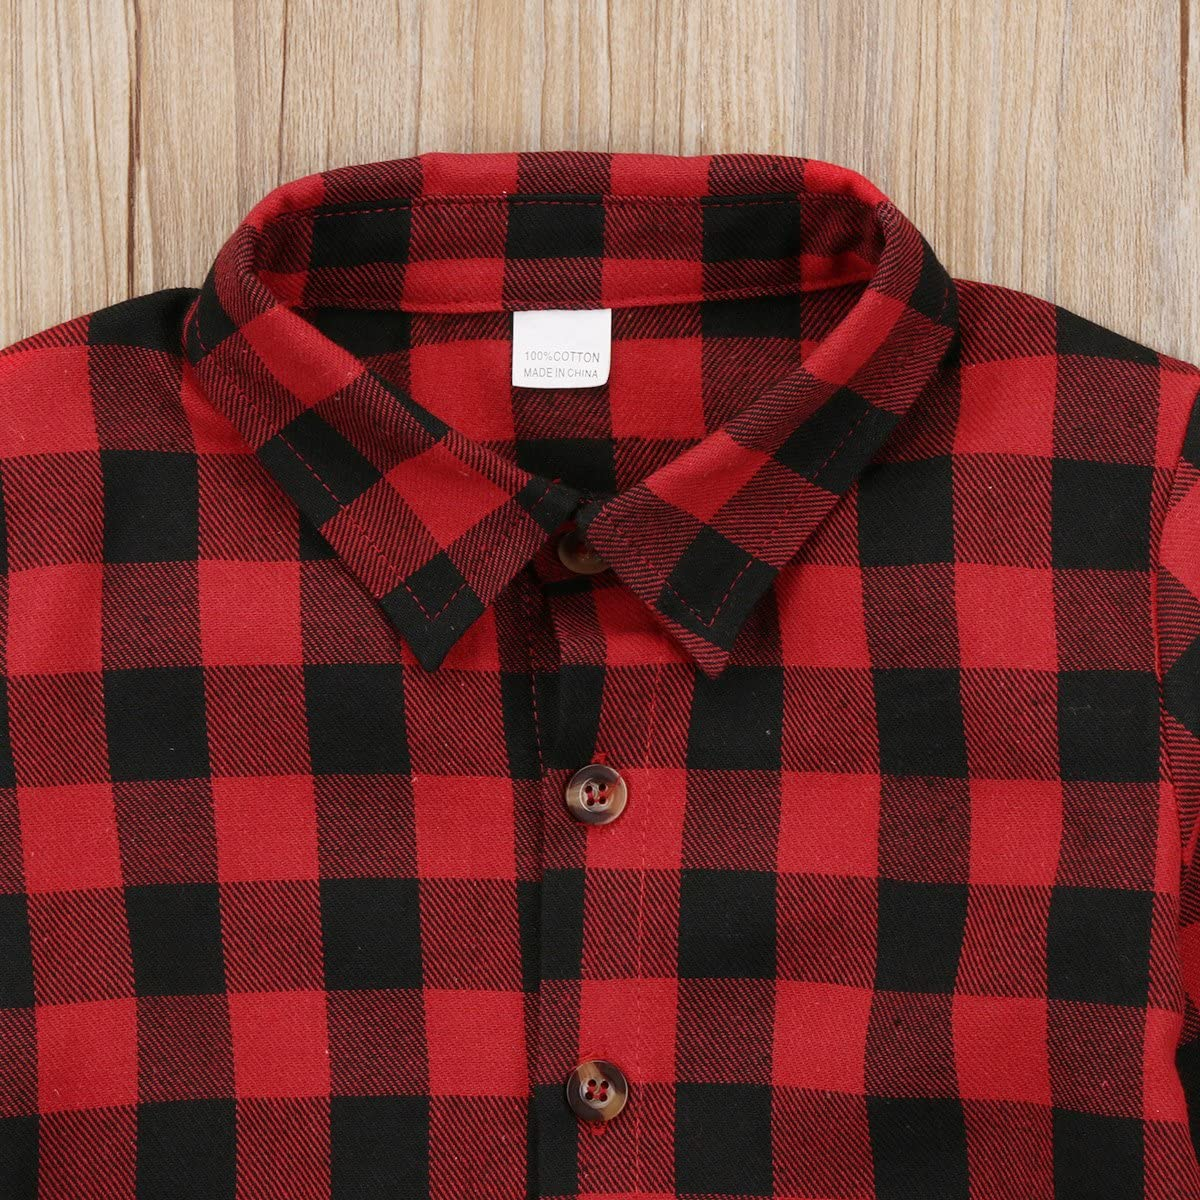 6T, Red Kids Little Boys Girls Baby Letters Print Long Sleeve Button Down Red Plaid Flannel Shirt